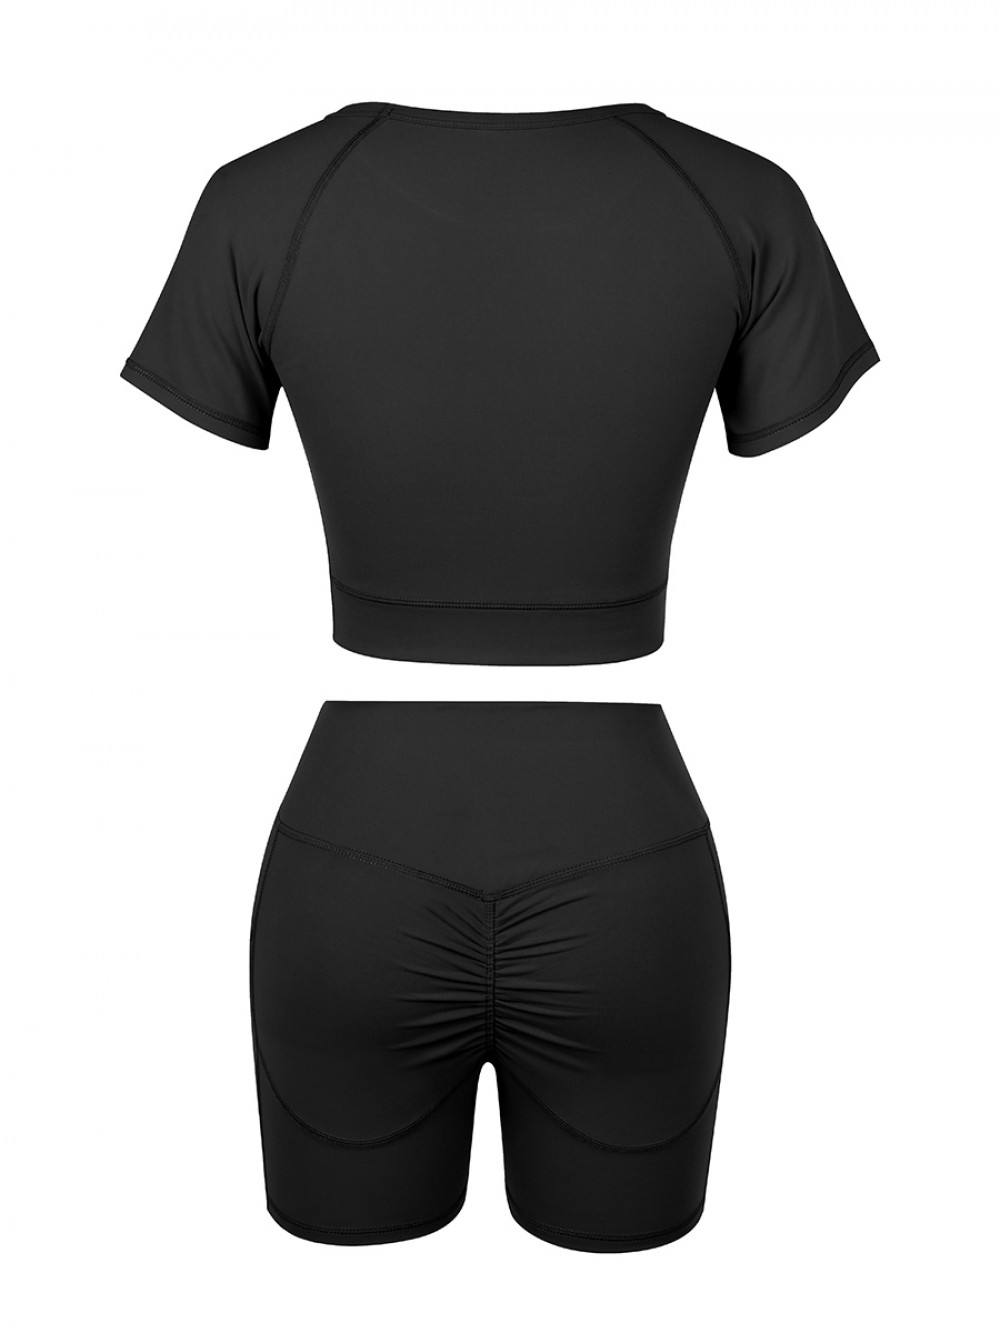 Sunset Black Solid Color Round Collar Sweat Suit For Girls